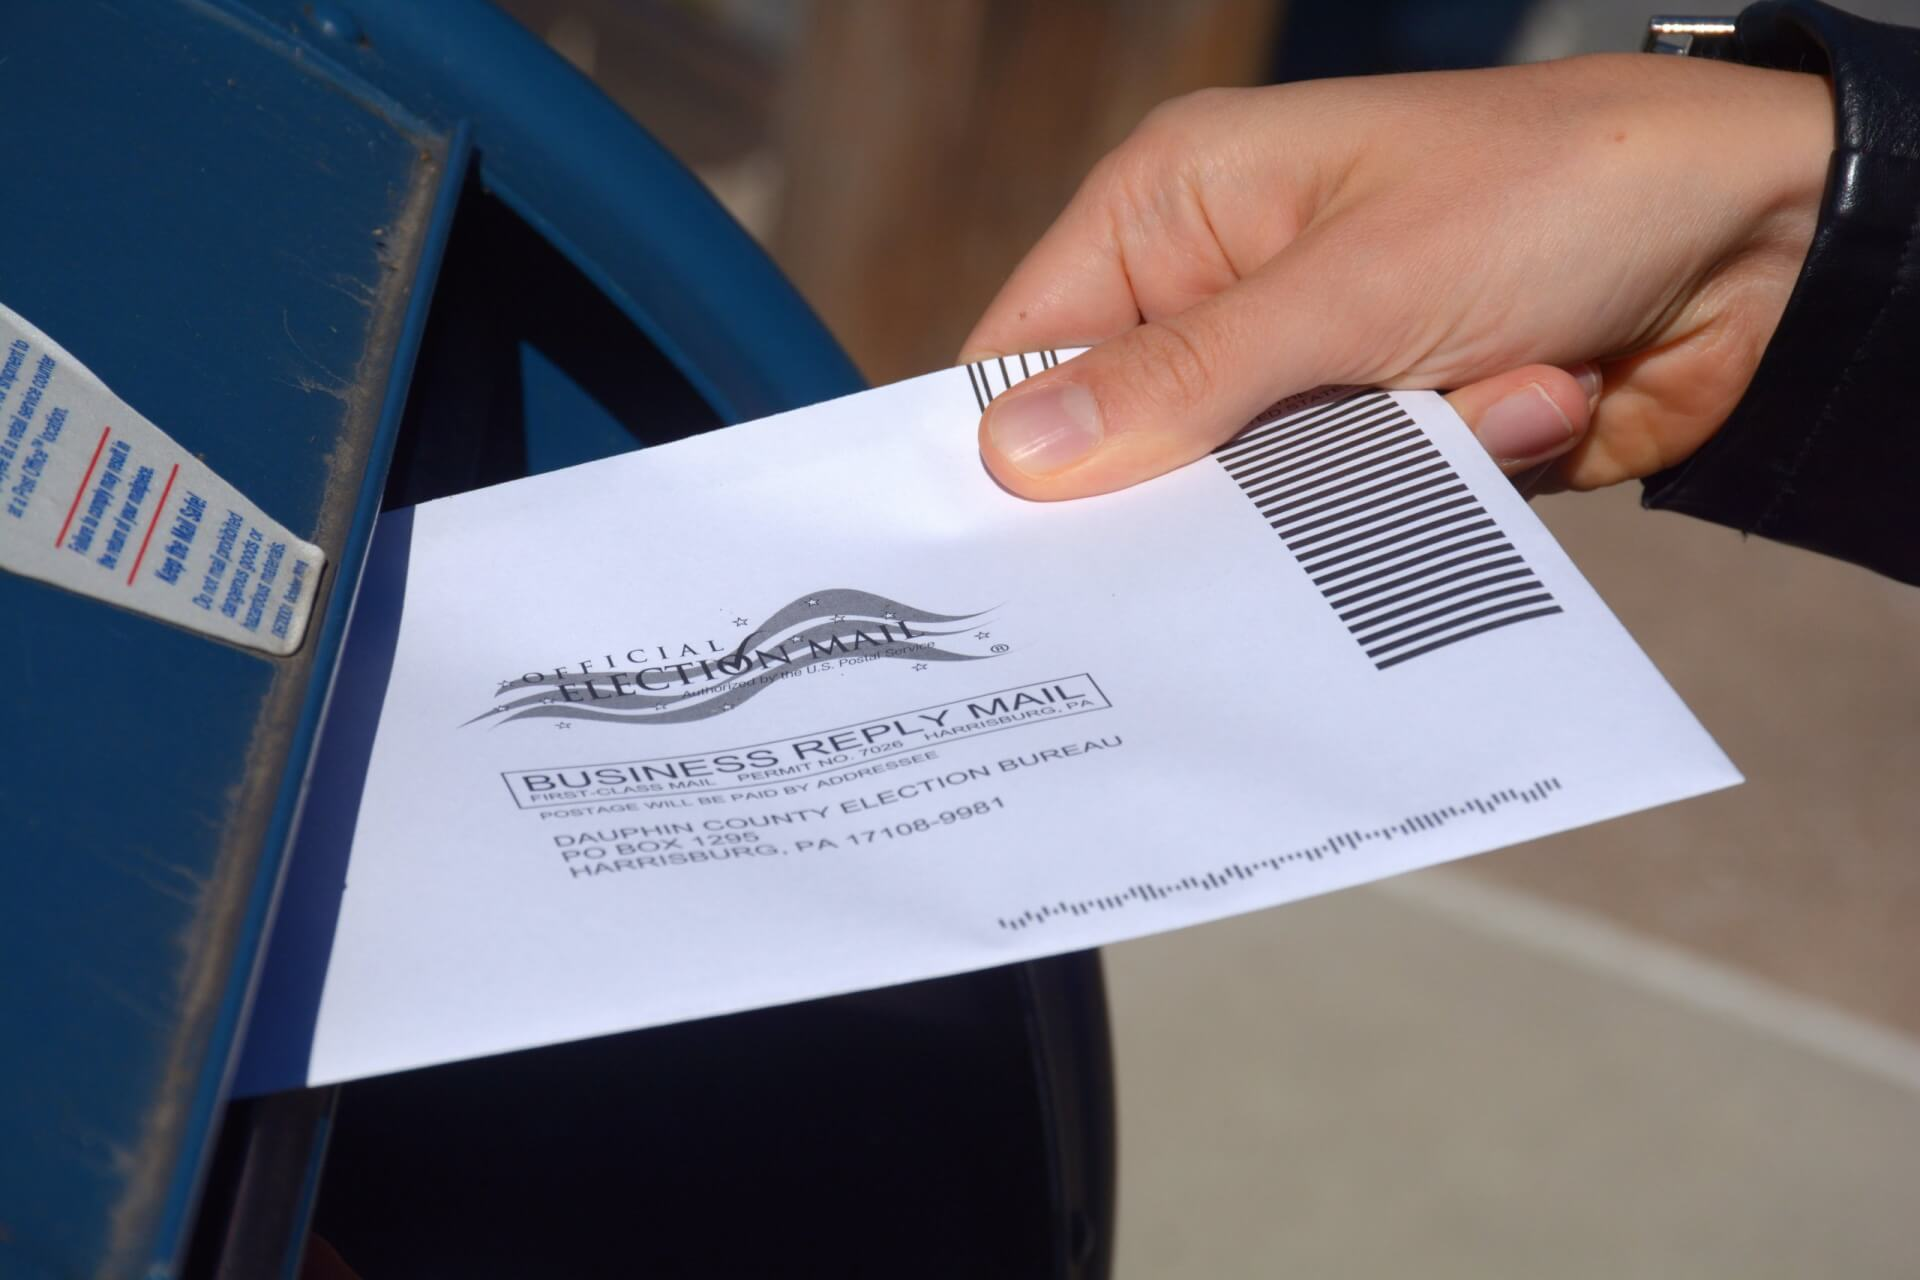 With new amendment strategy, Pa. GOP could target voter ID, mail-in ballots